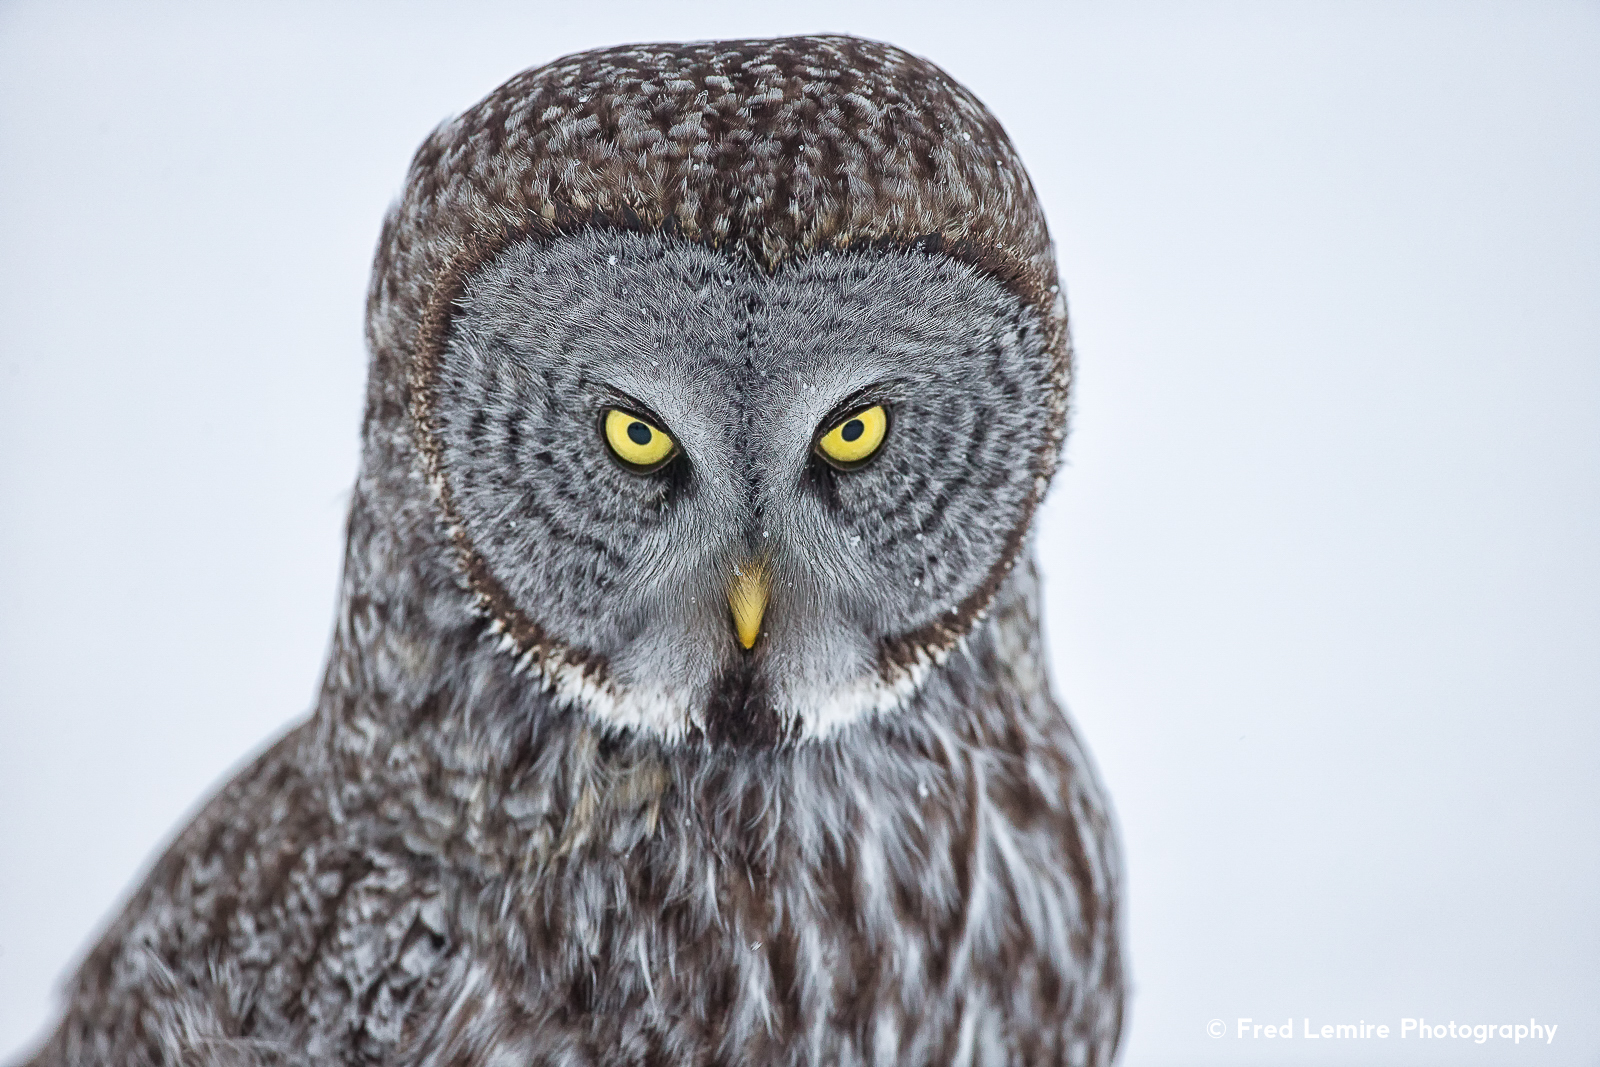 Fred Lemire Photography-owls-220.jpg